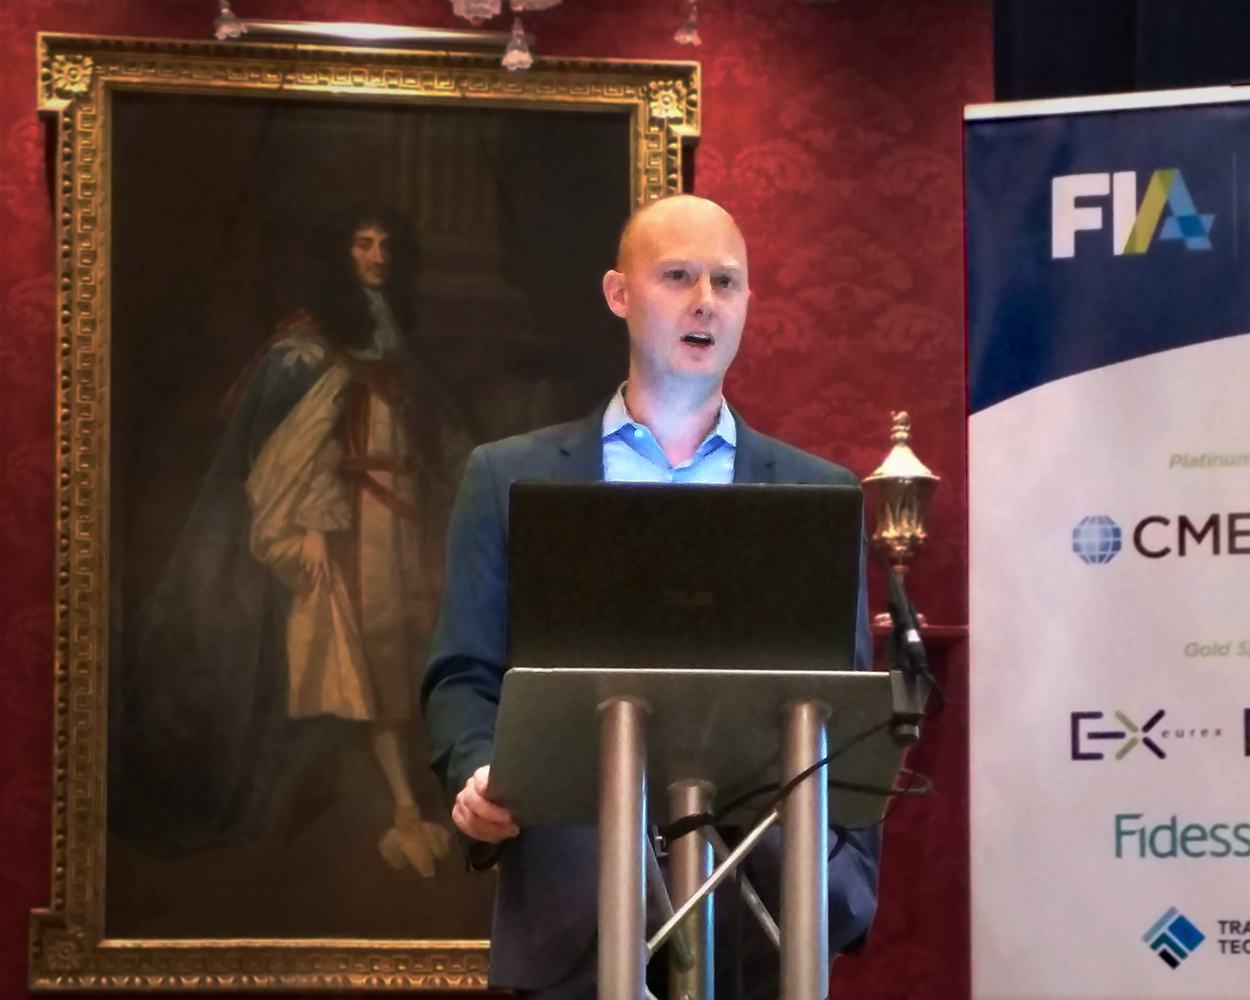 Drew Shields speaking at FIA's InfoNet event in London